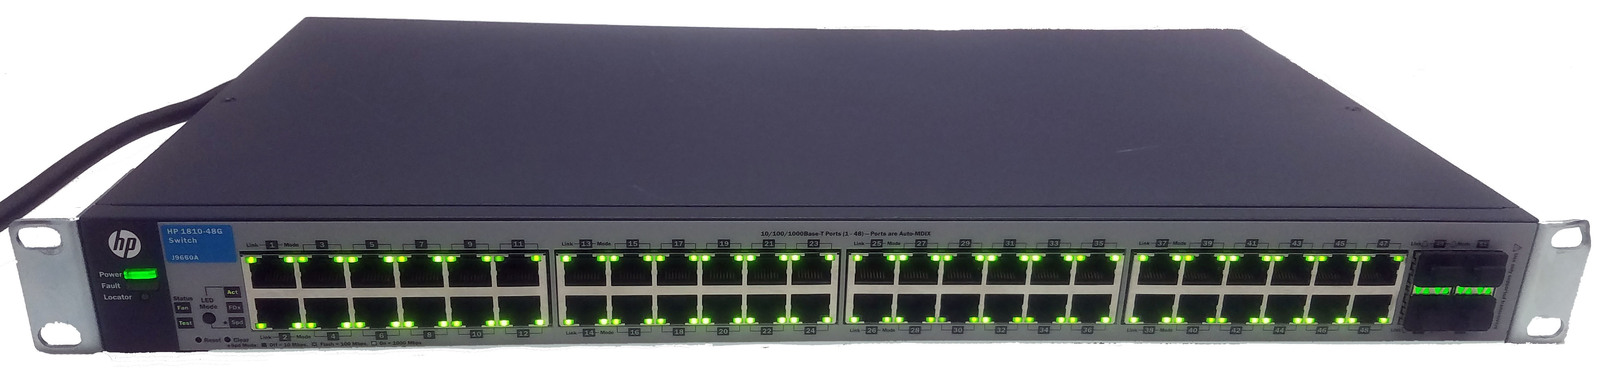 HP 1810-48G (J9660A) 48 Port Gigabit Switch Bin:10